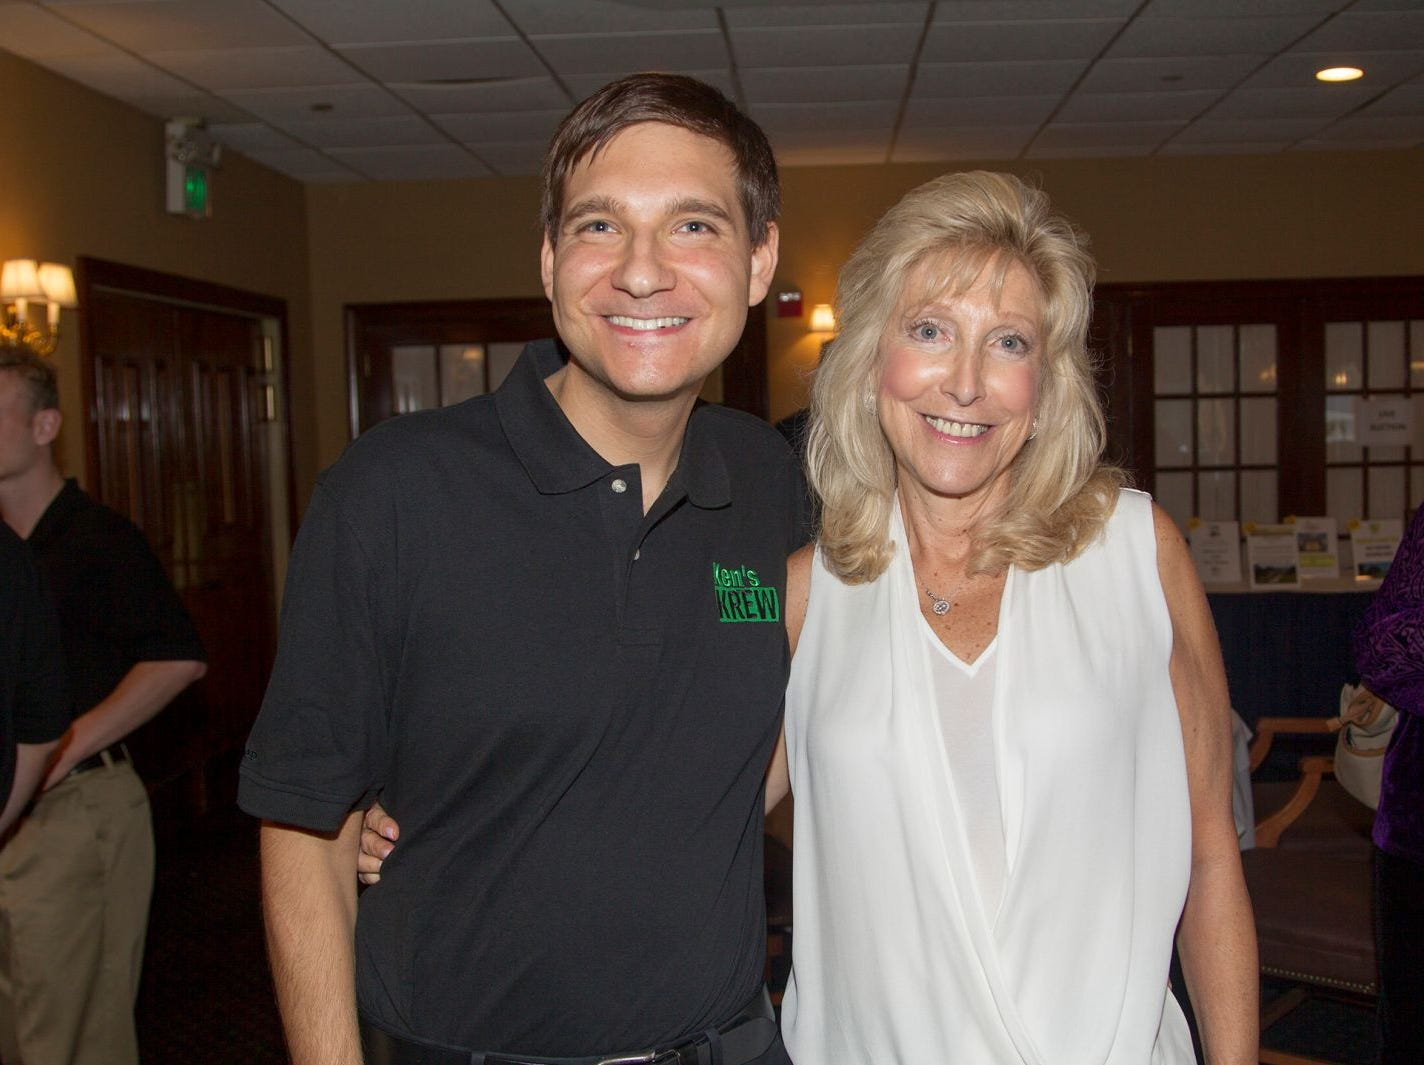 Evan and Ronni Rantzer. Ken's Krew Golf Outing at White Beeches Country Club in Haworth. Ken's Krew provides vocational training and job placement services for young adults with intellectual and developmental disabilities. 10/09/2018